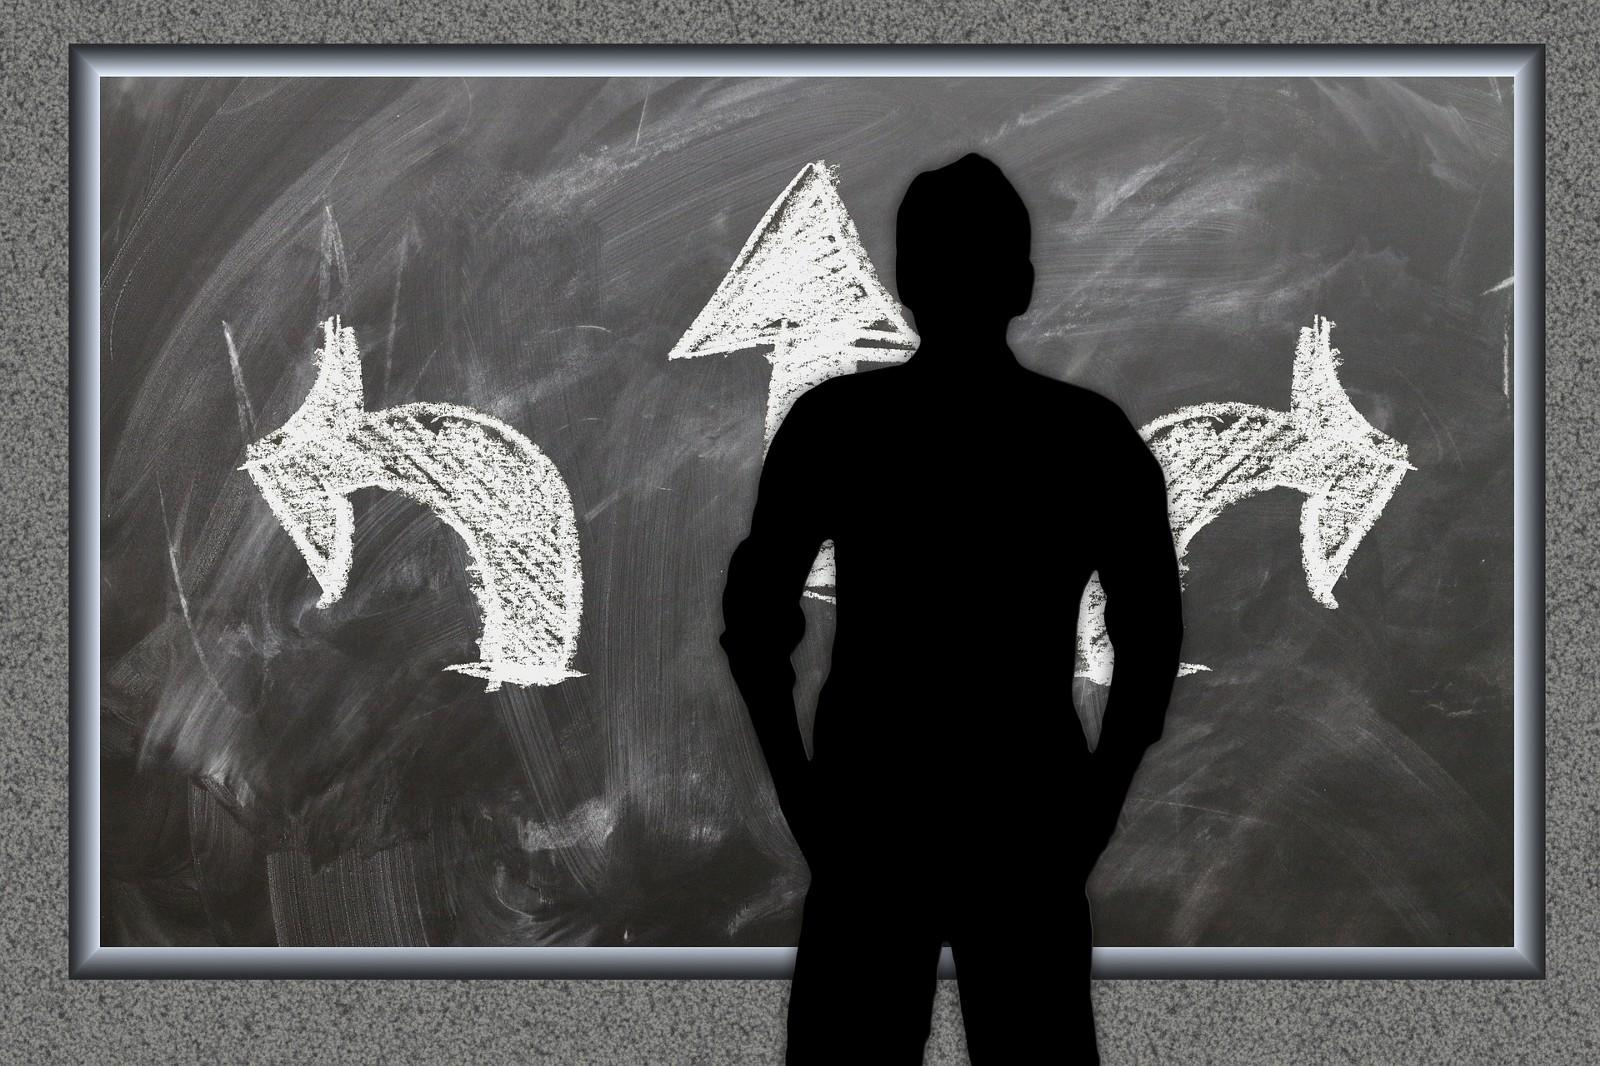 Image of a silhouetted figure standing in front if chalkboard with drawing of three arrows pointing out.